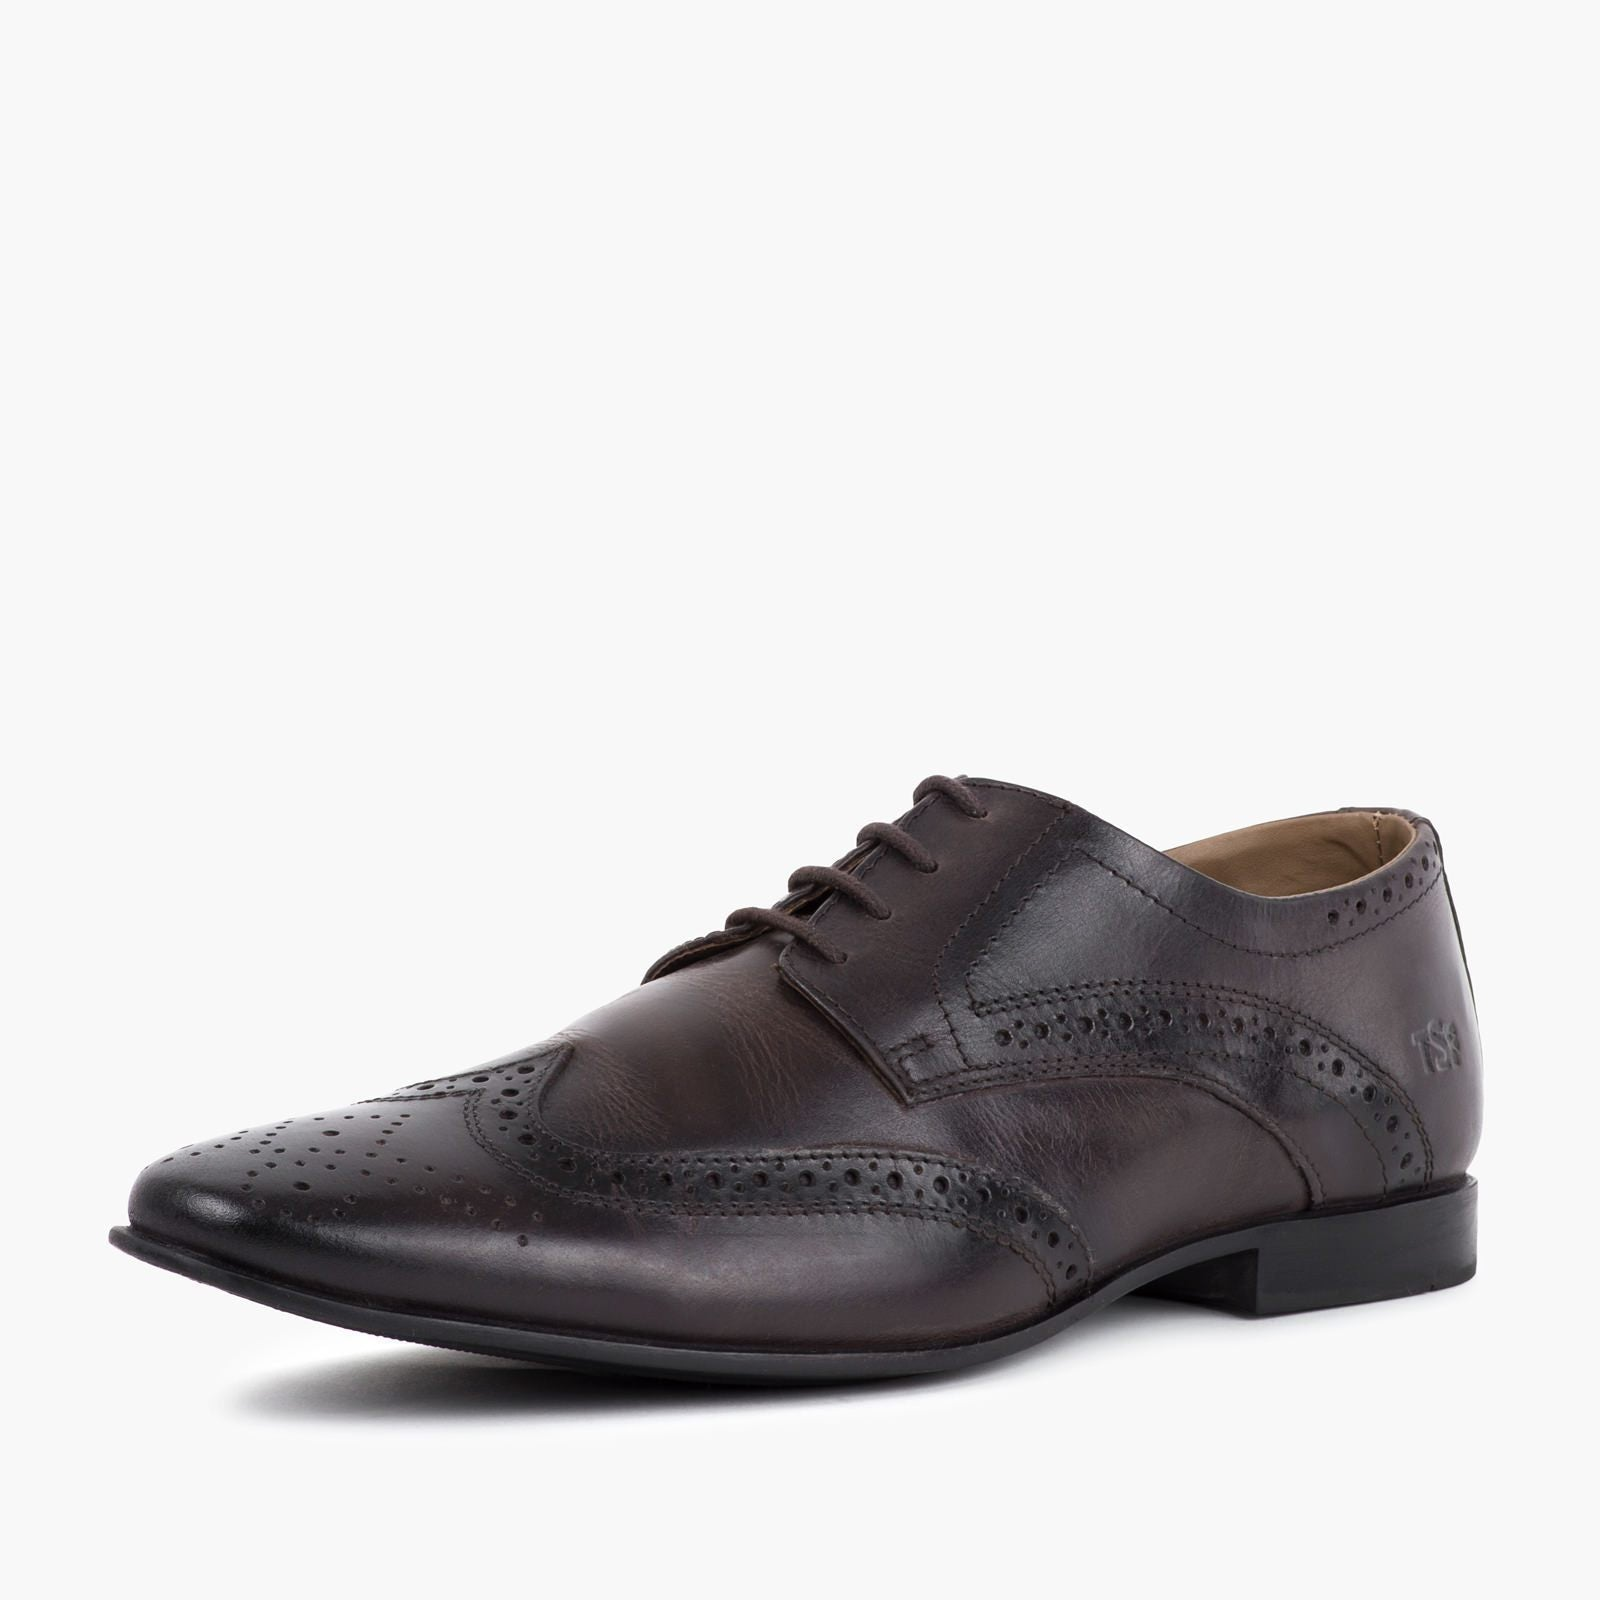 Redfoot Shoes Footwear UK 6 / EURO 39 / US 7 / Brown / Leather MENS DERBY BROGUE BROWN